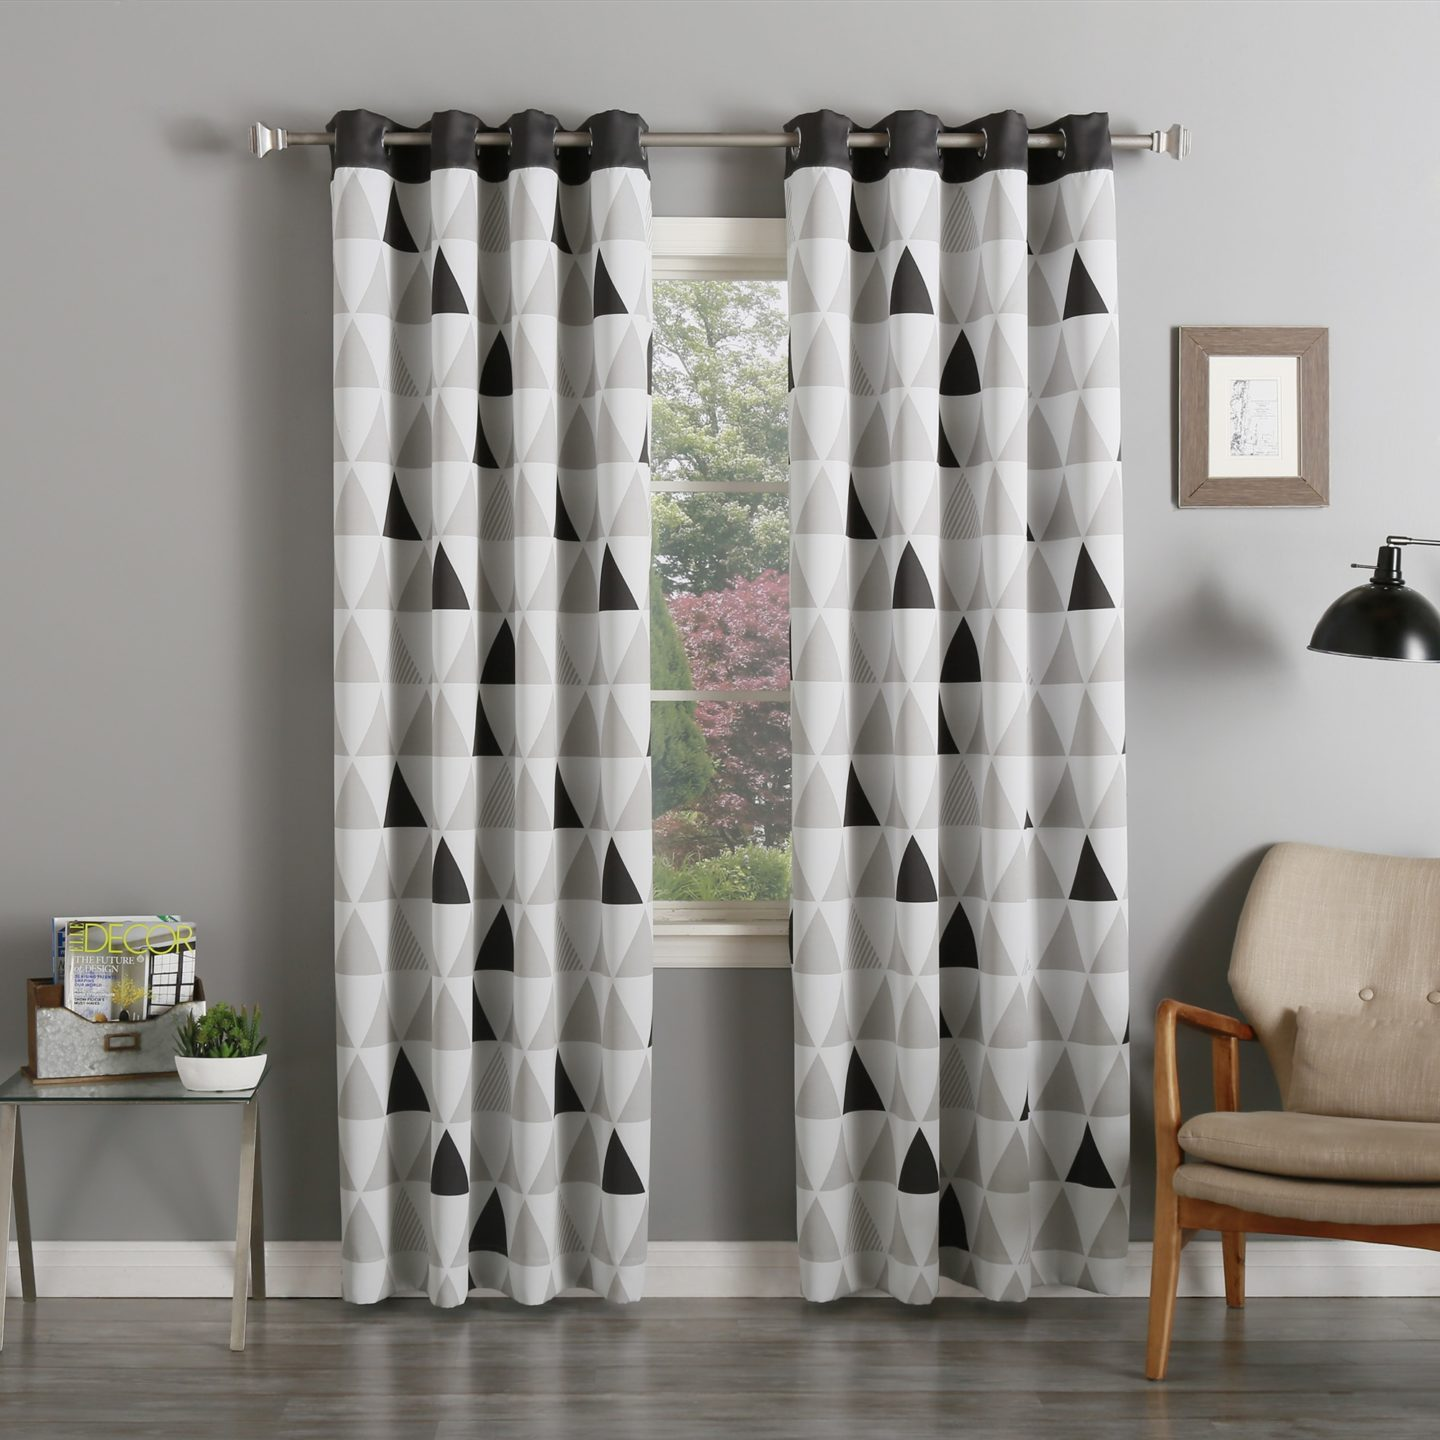 Window Coverings To Keep Heat Out Faqs About Thermal Insulated Curtains Overstock